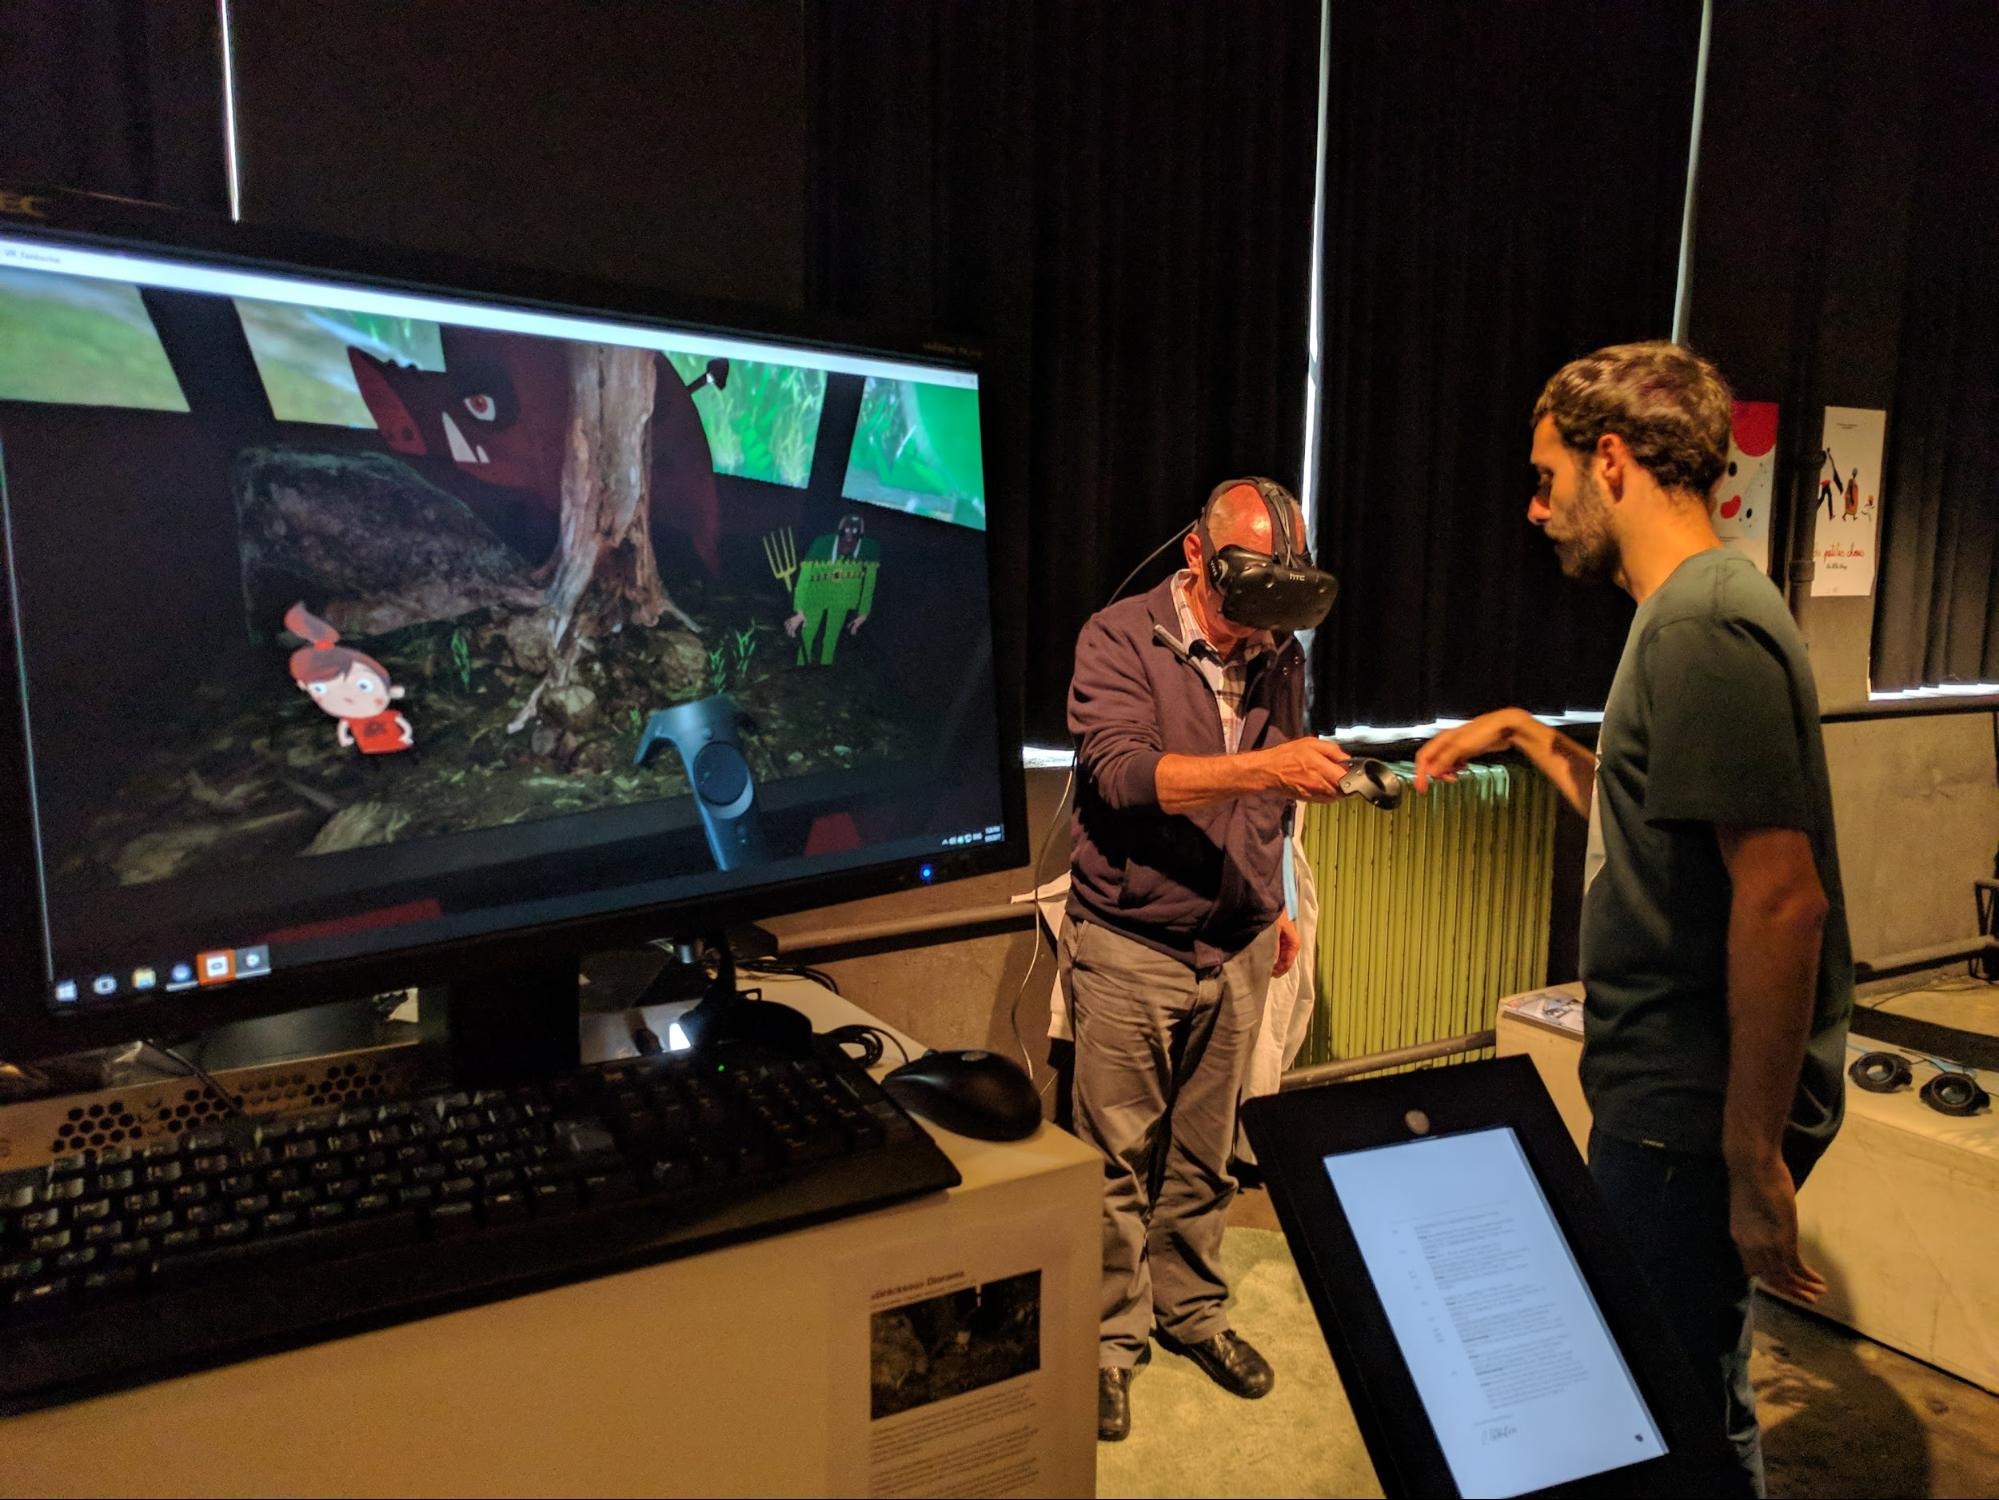 Photo - man using VR headset and others watching screen where he is playing